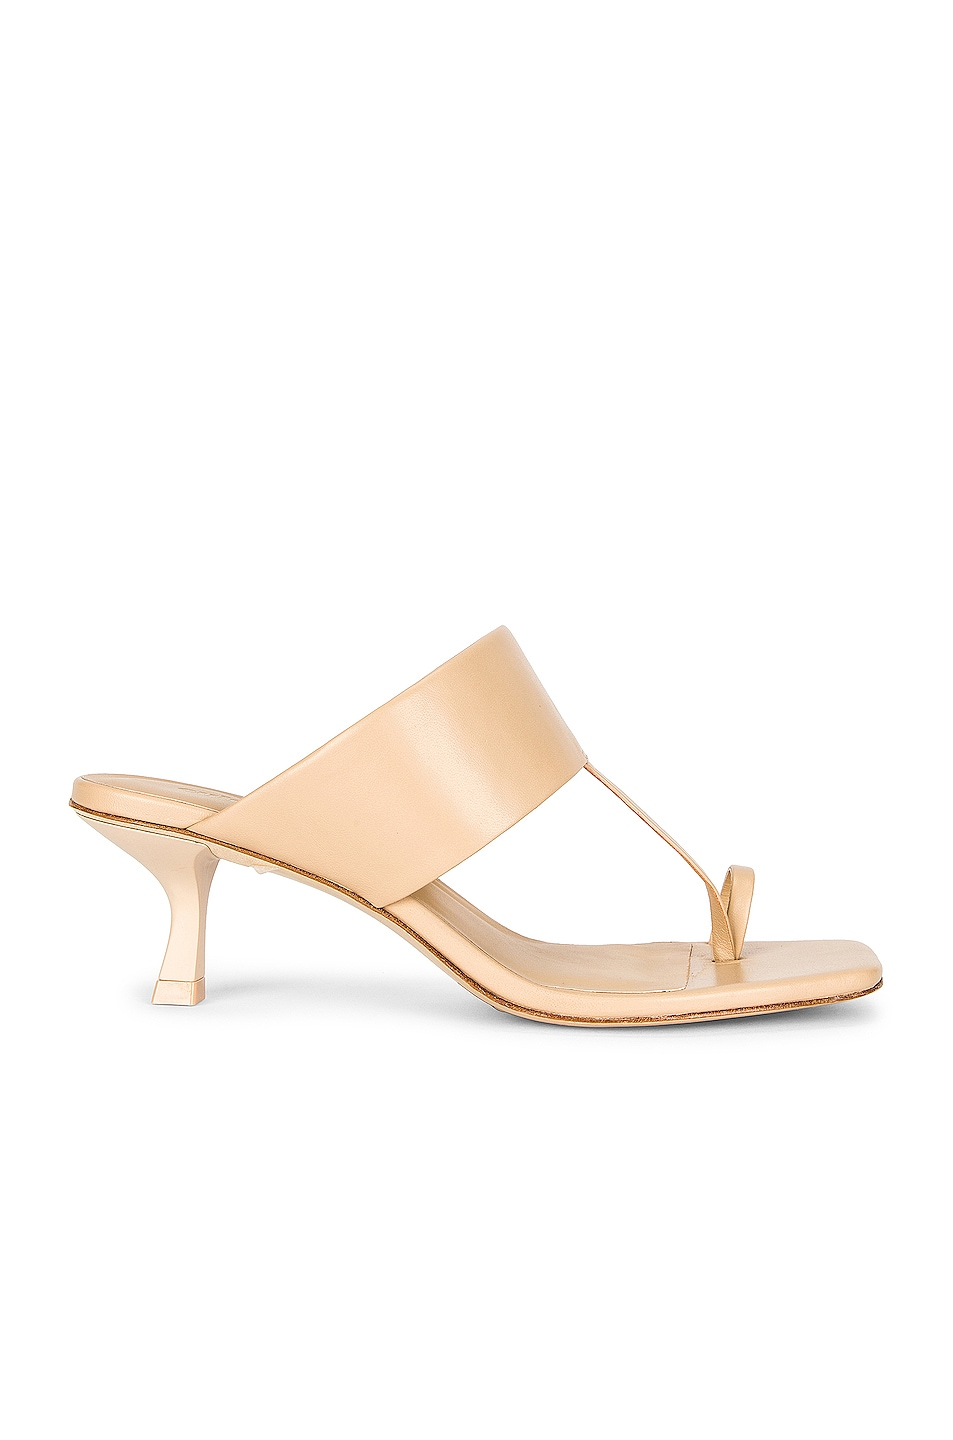 Image 1 of Cult Gaia Yvette Sandal in Sand